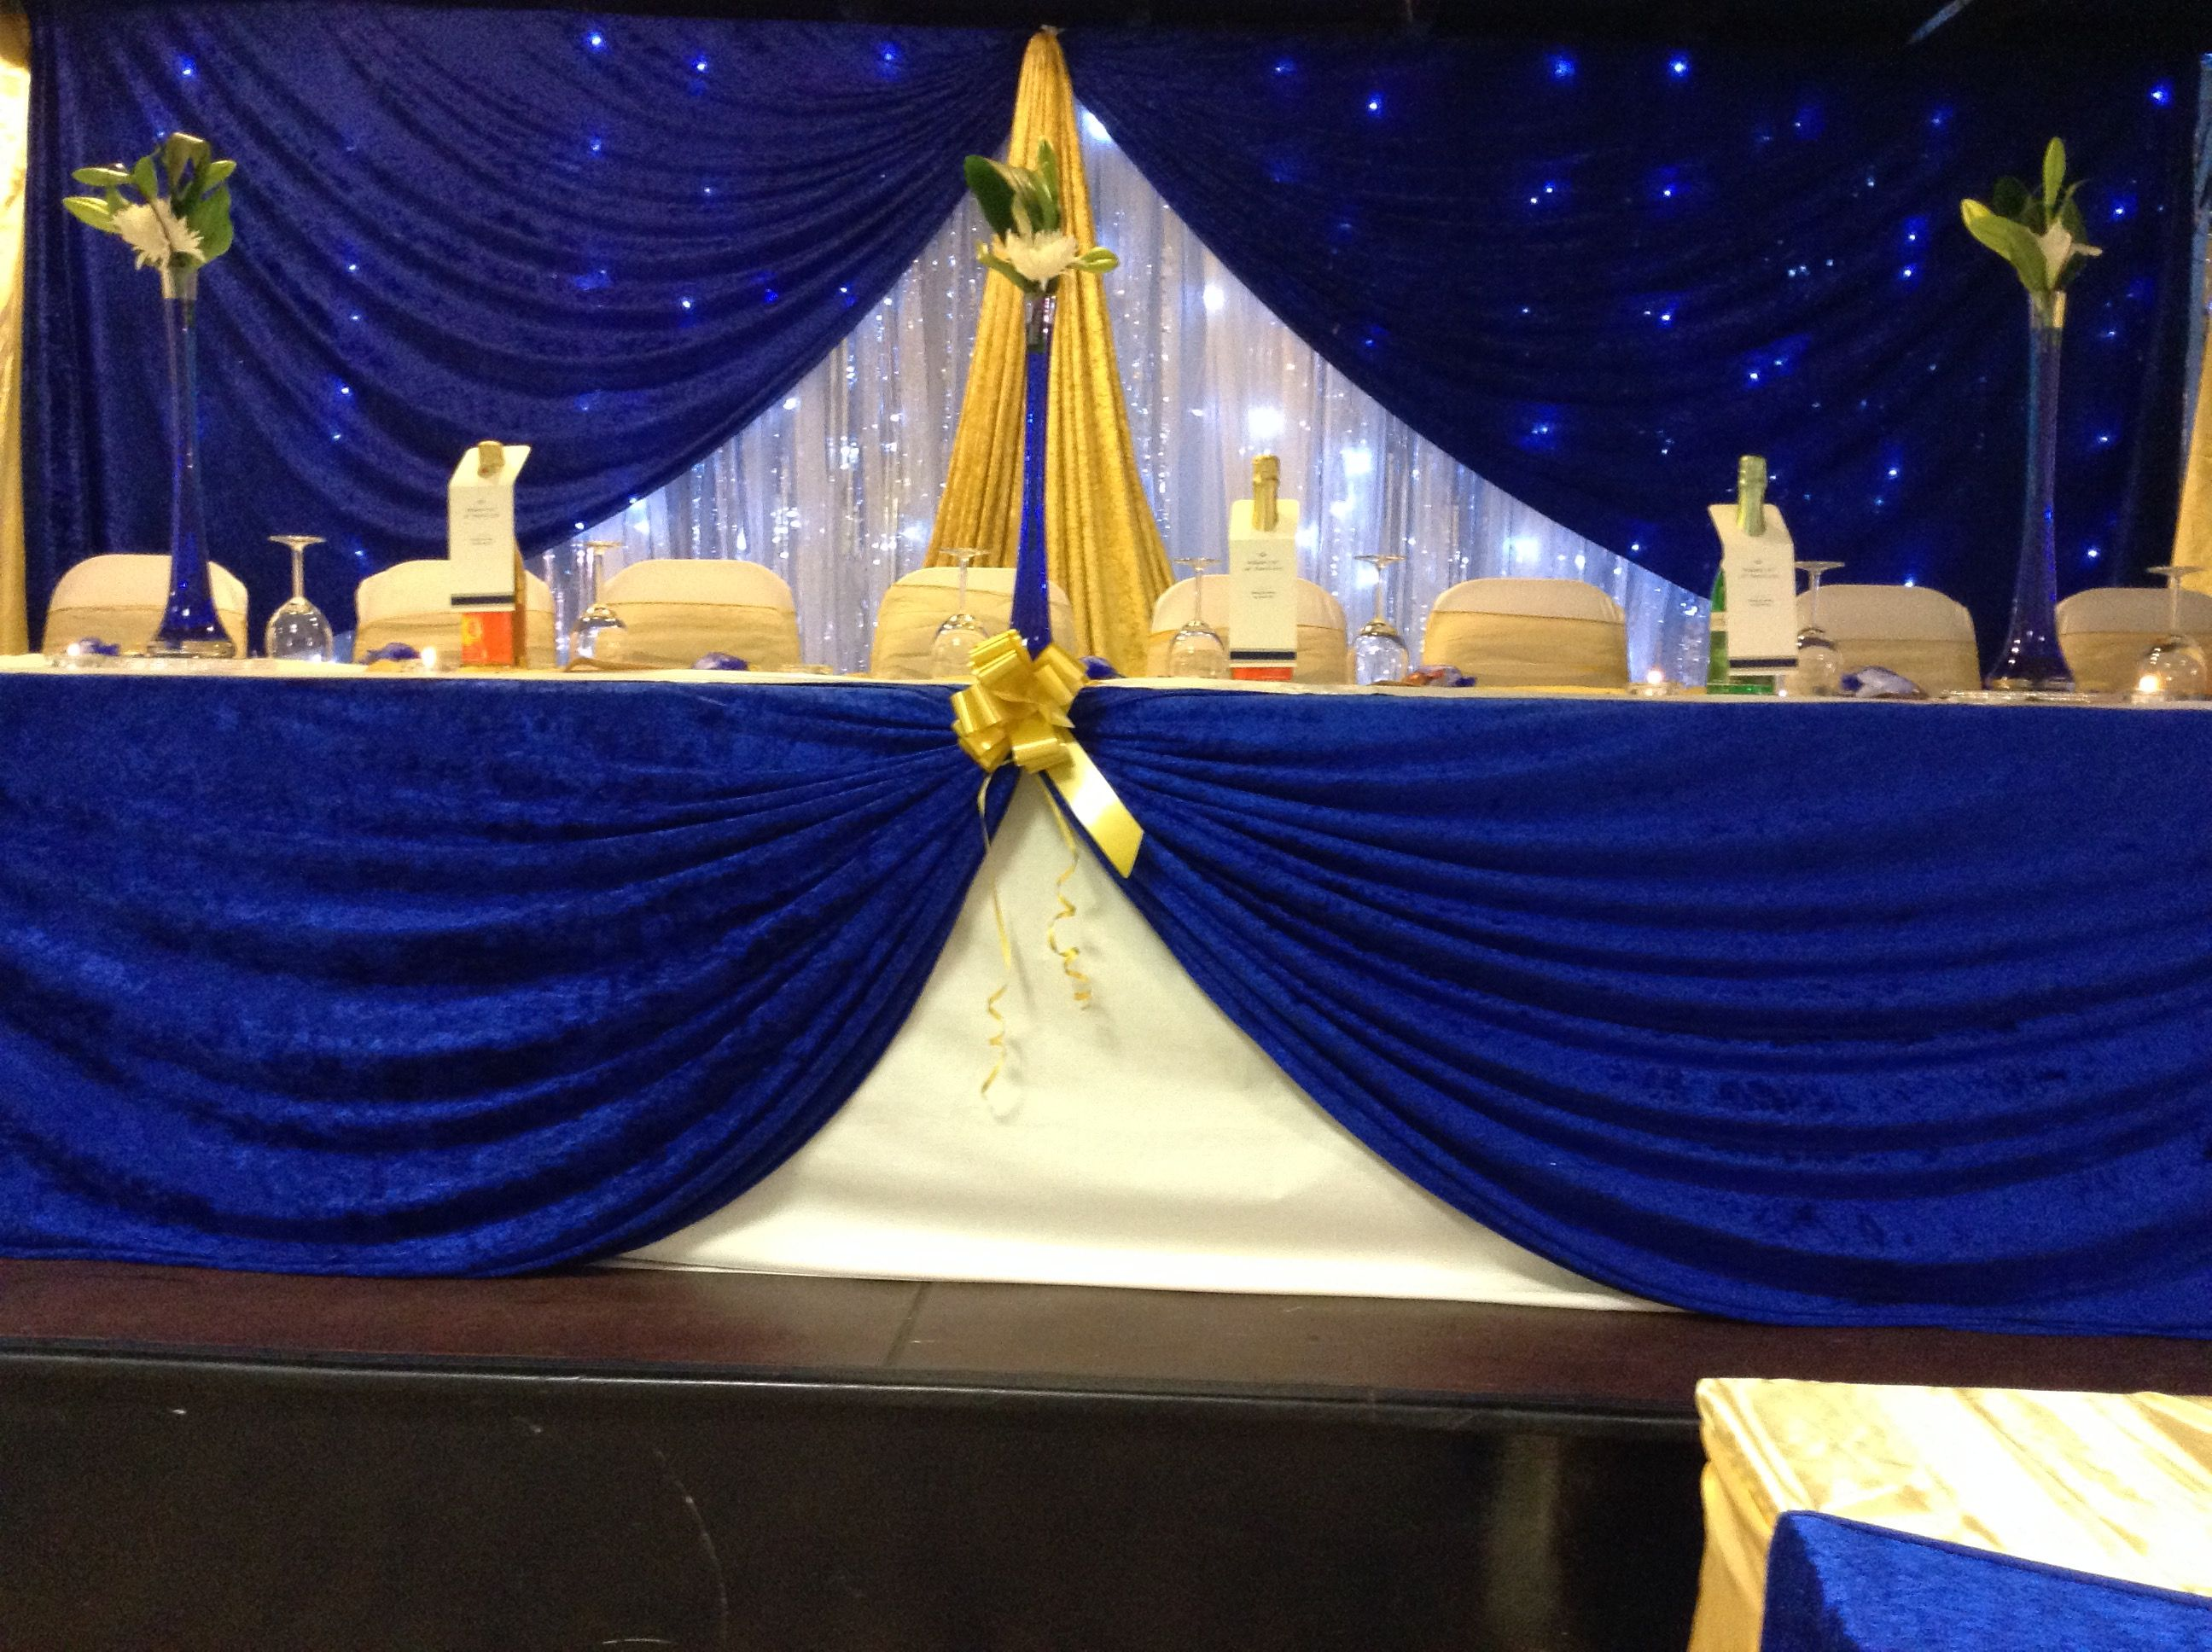 Wedding decorations royal blue  Royal blue and gold backdrop  RECRUITS SHIELD DAY  Pinterest